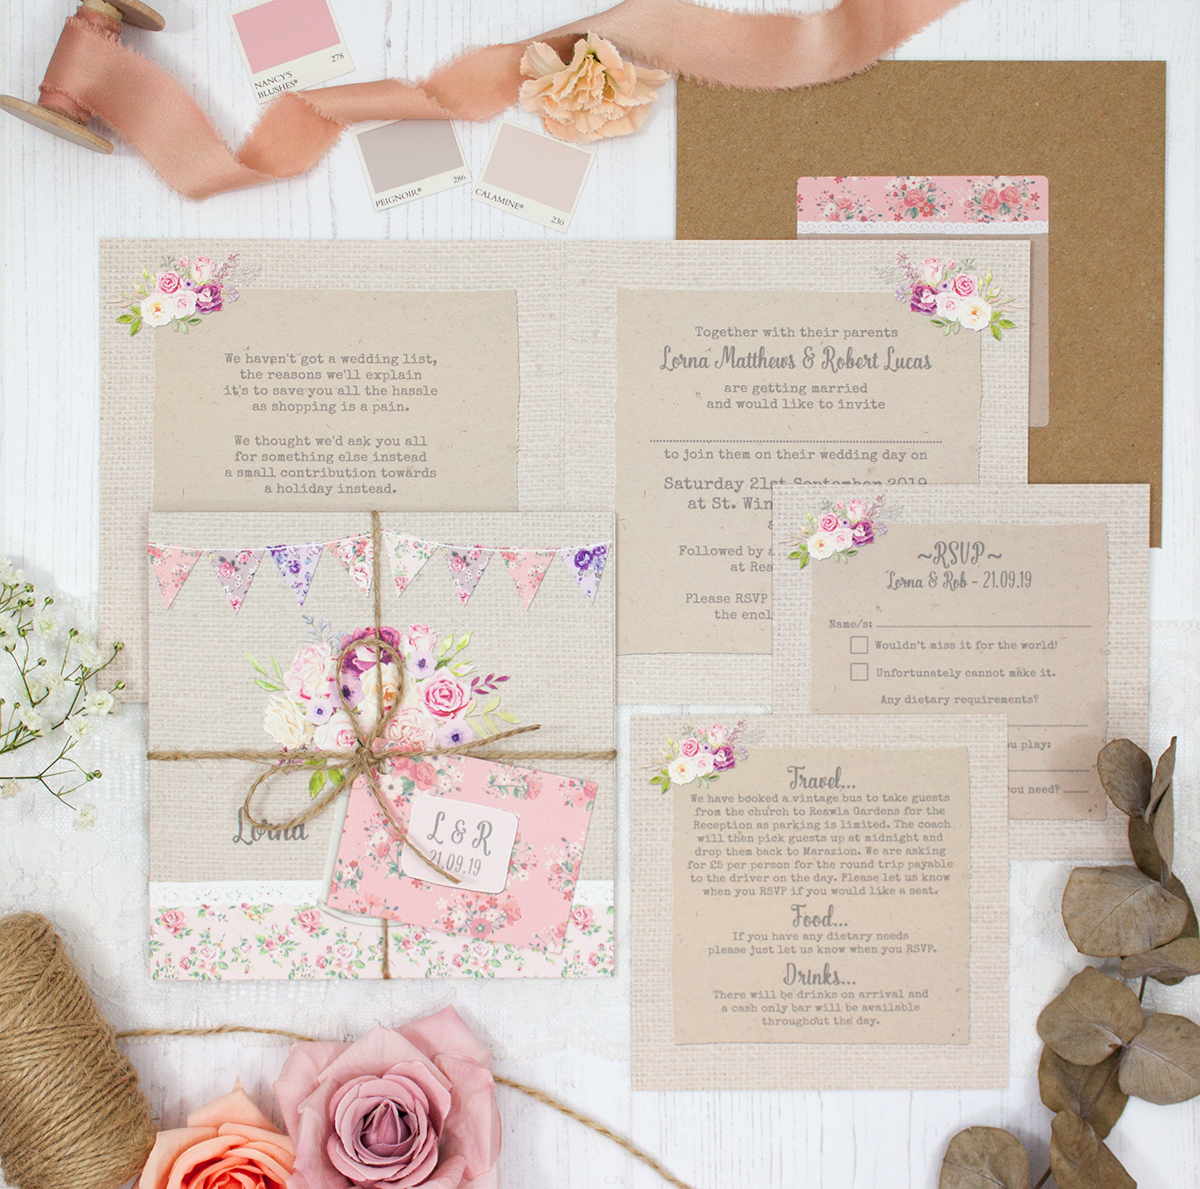 Floral Blooms Wedding showing invitation